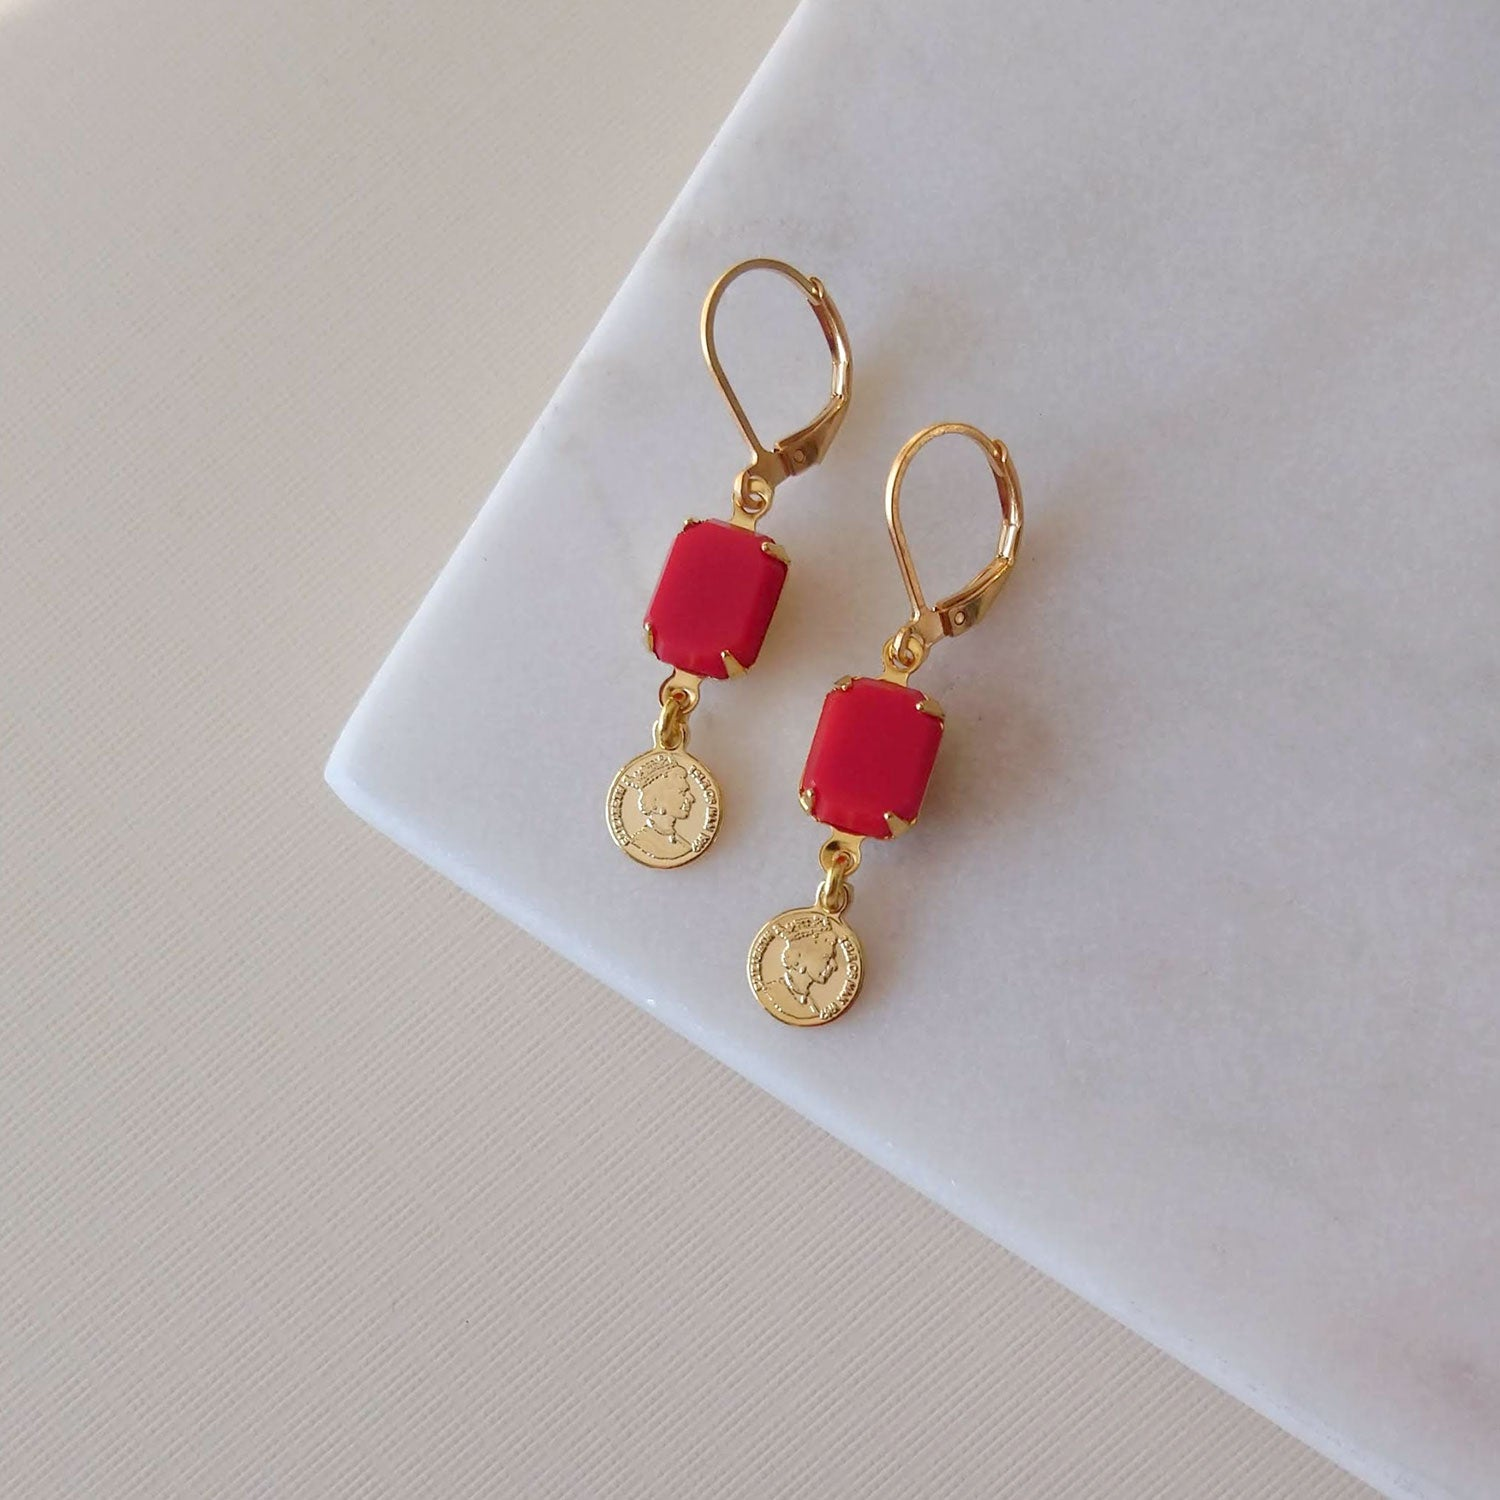 Cherry red earrings lucky charm coin